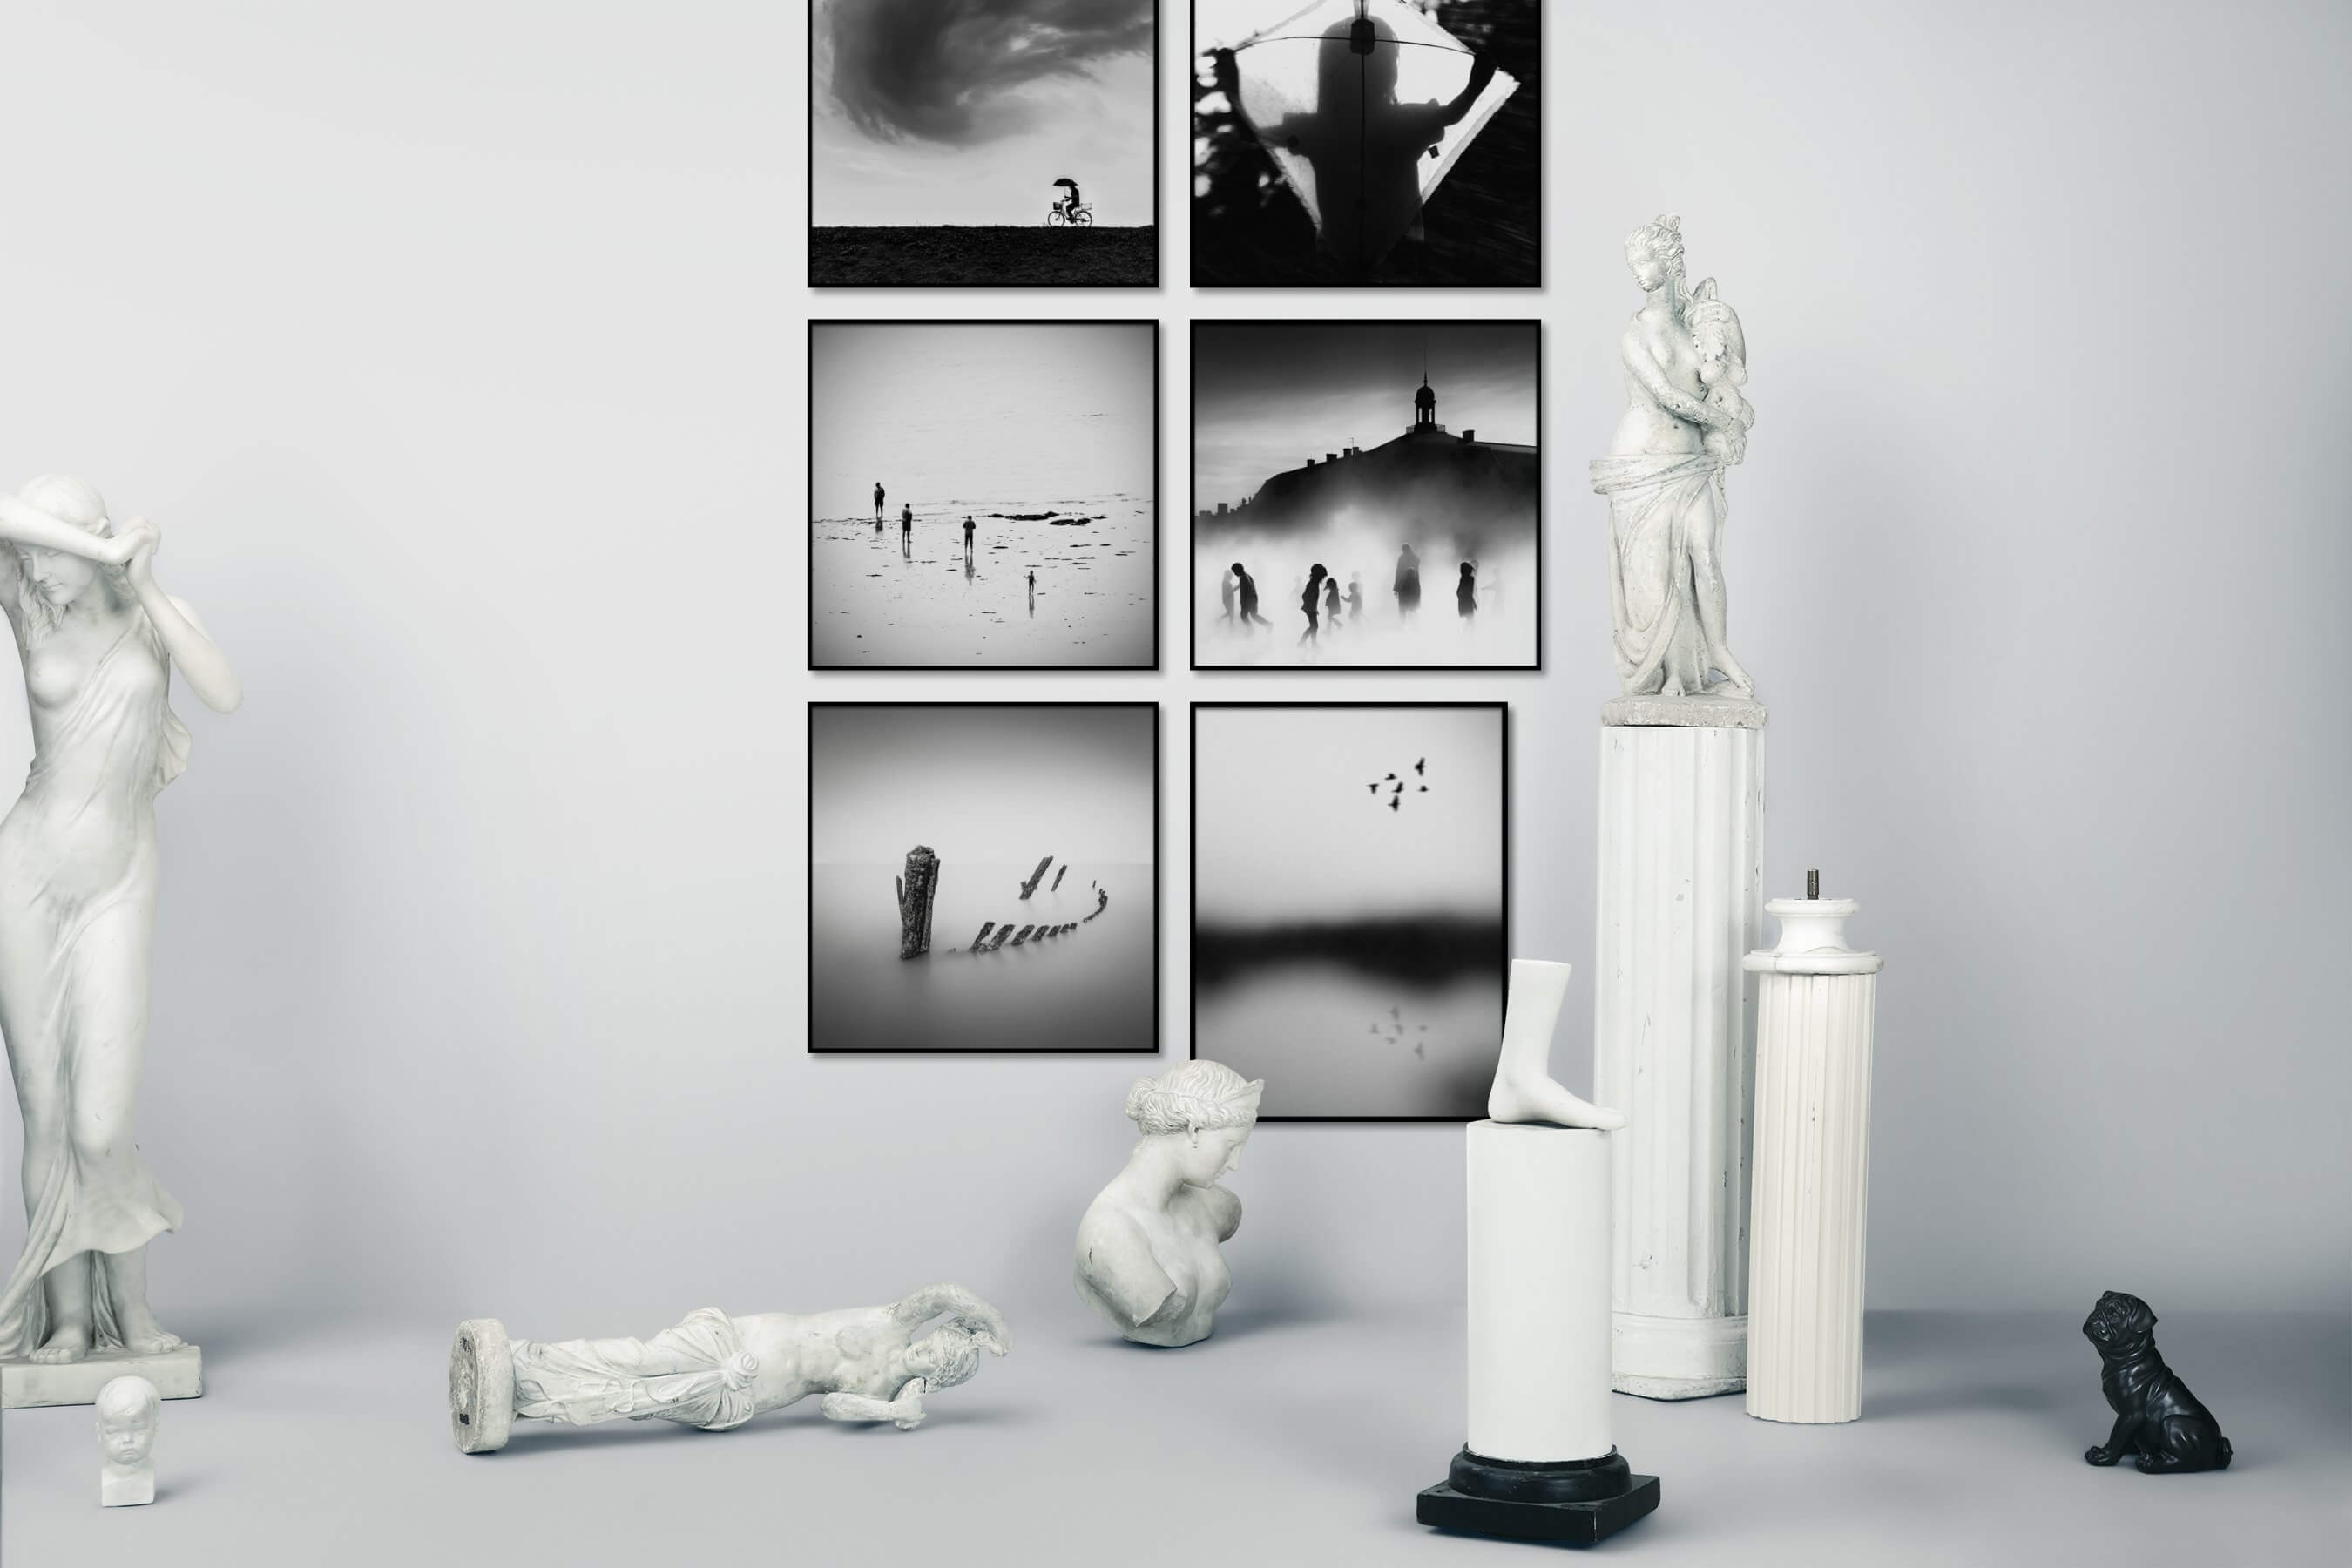 Gallery wall idea with six framed pictures arranged on a wall depicting Black & White, Country Life, For the Moderate, For the Minimalist, Beach & Water, City Life, Mindfulness, and Nature